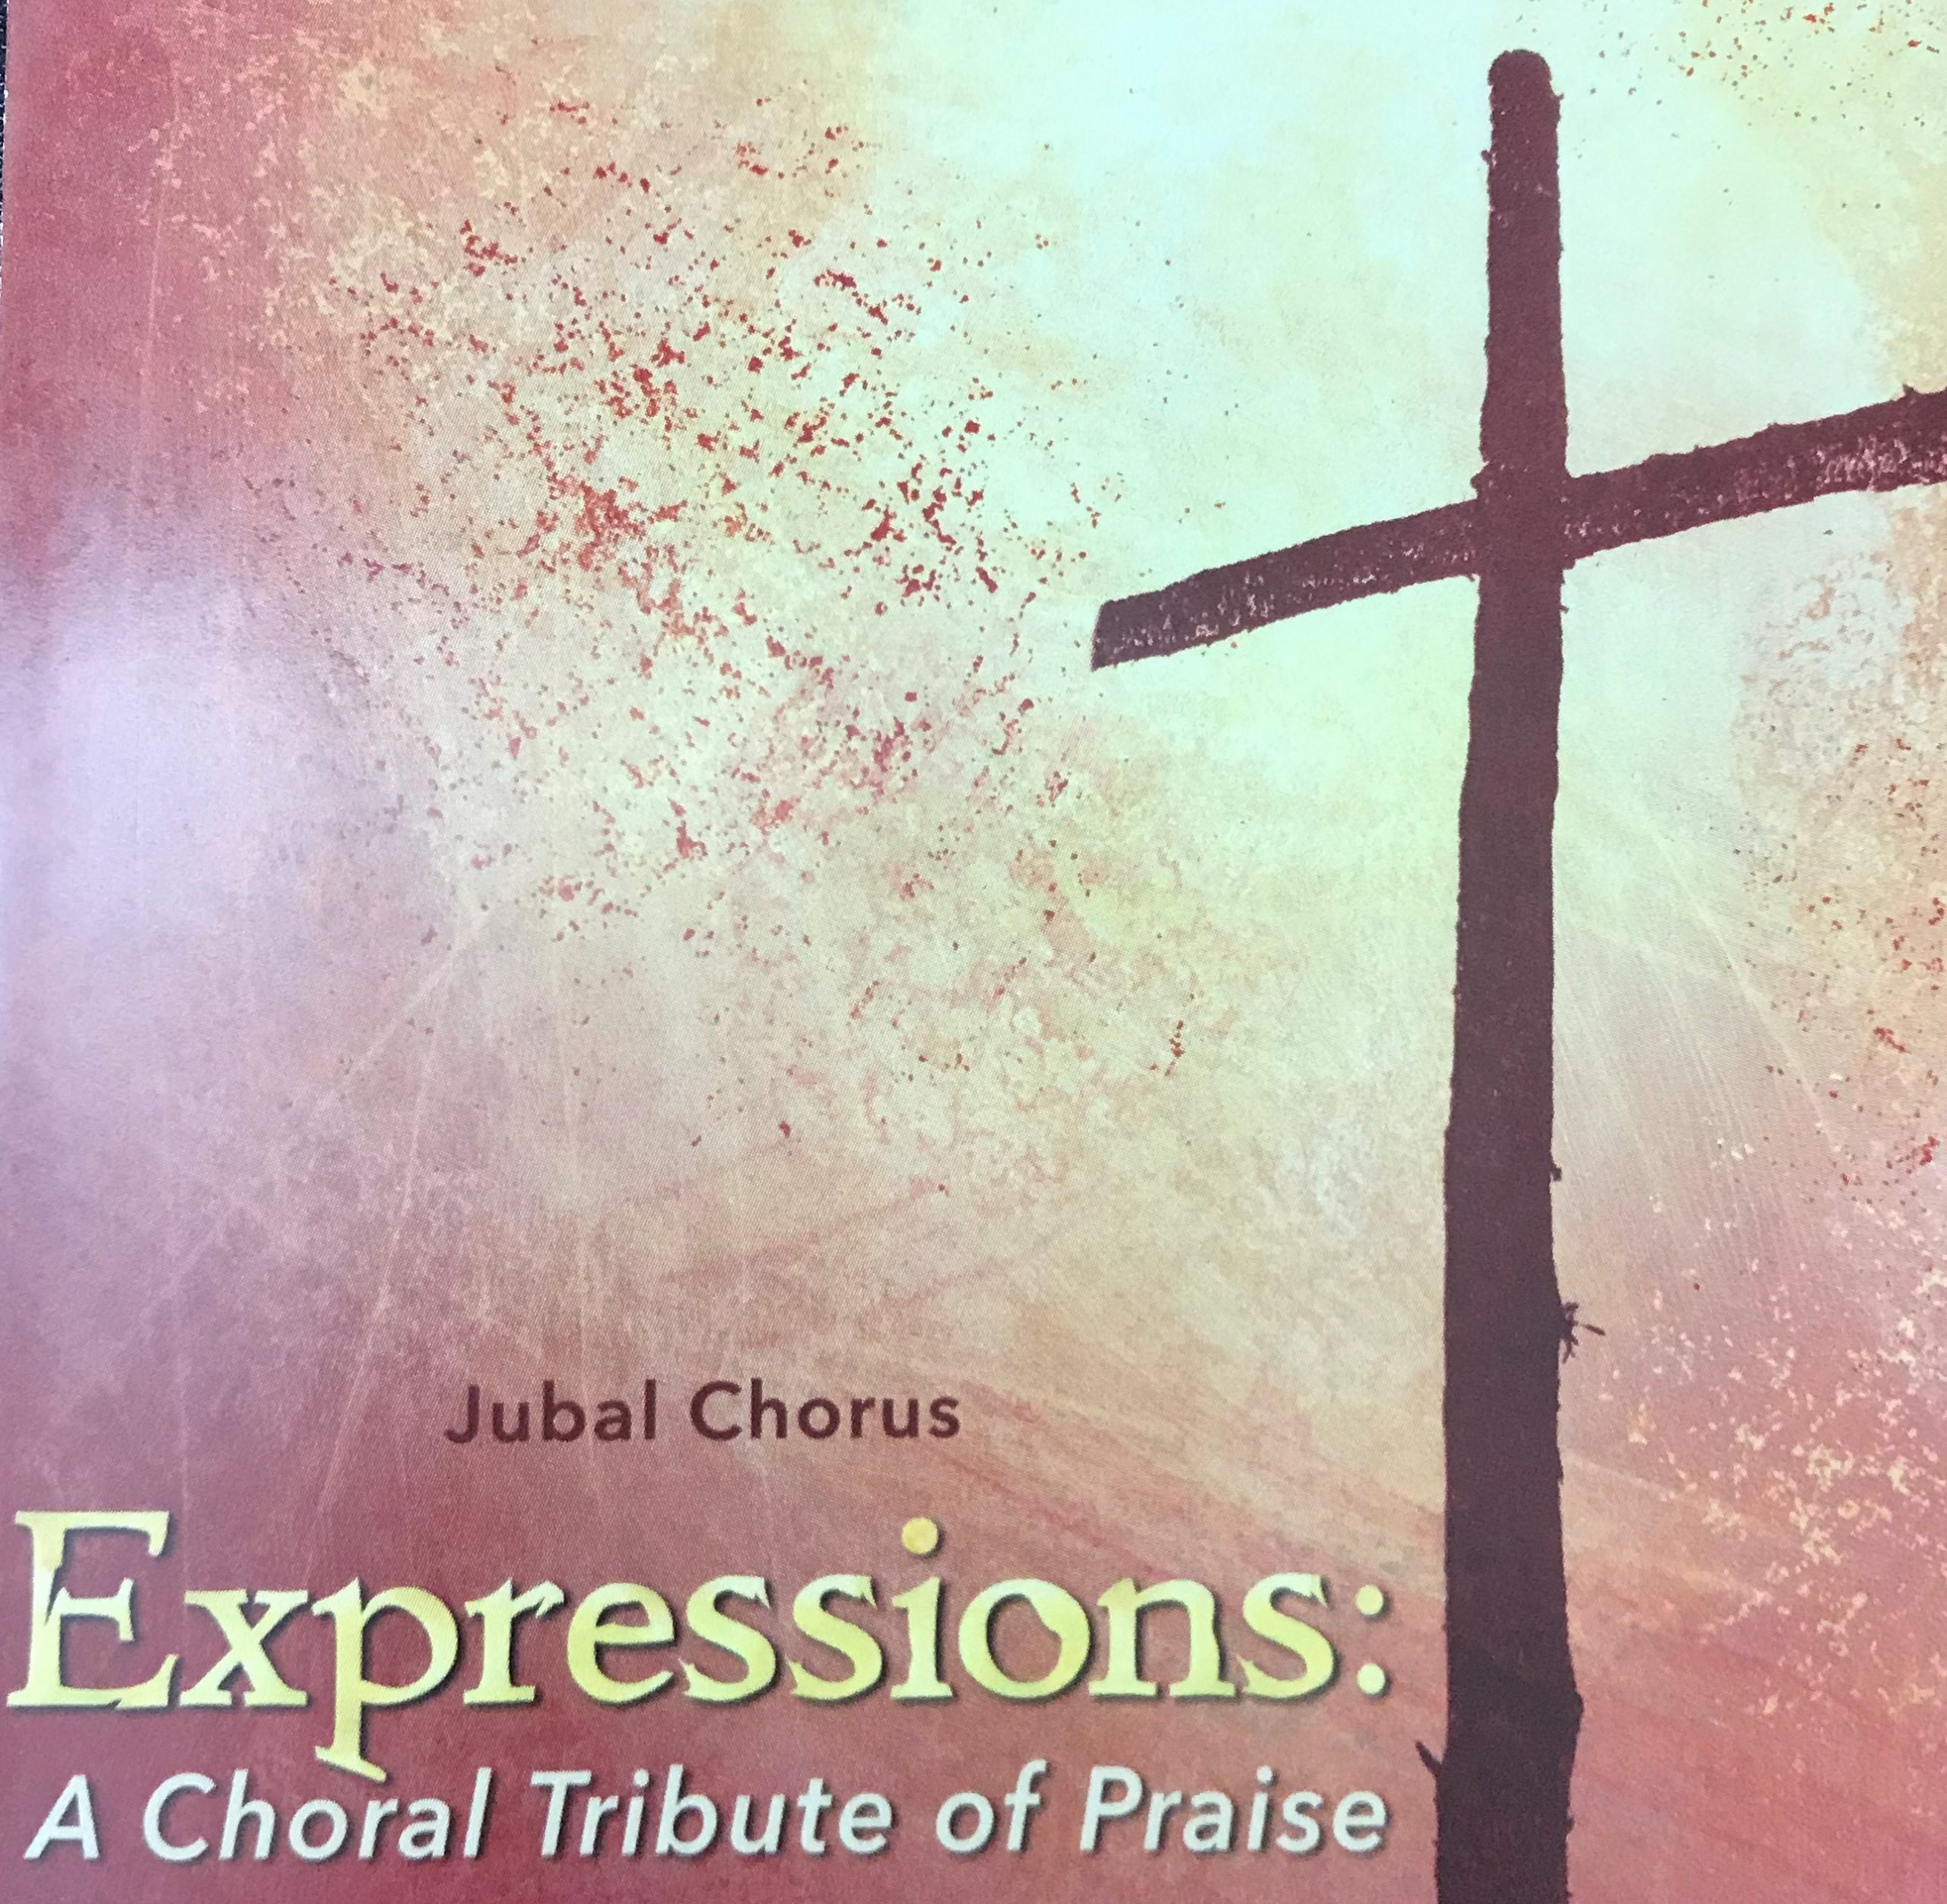 Expressions: A Choral Tribute of Praise  | Jubal Chorus